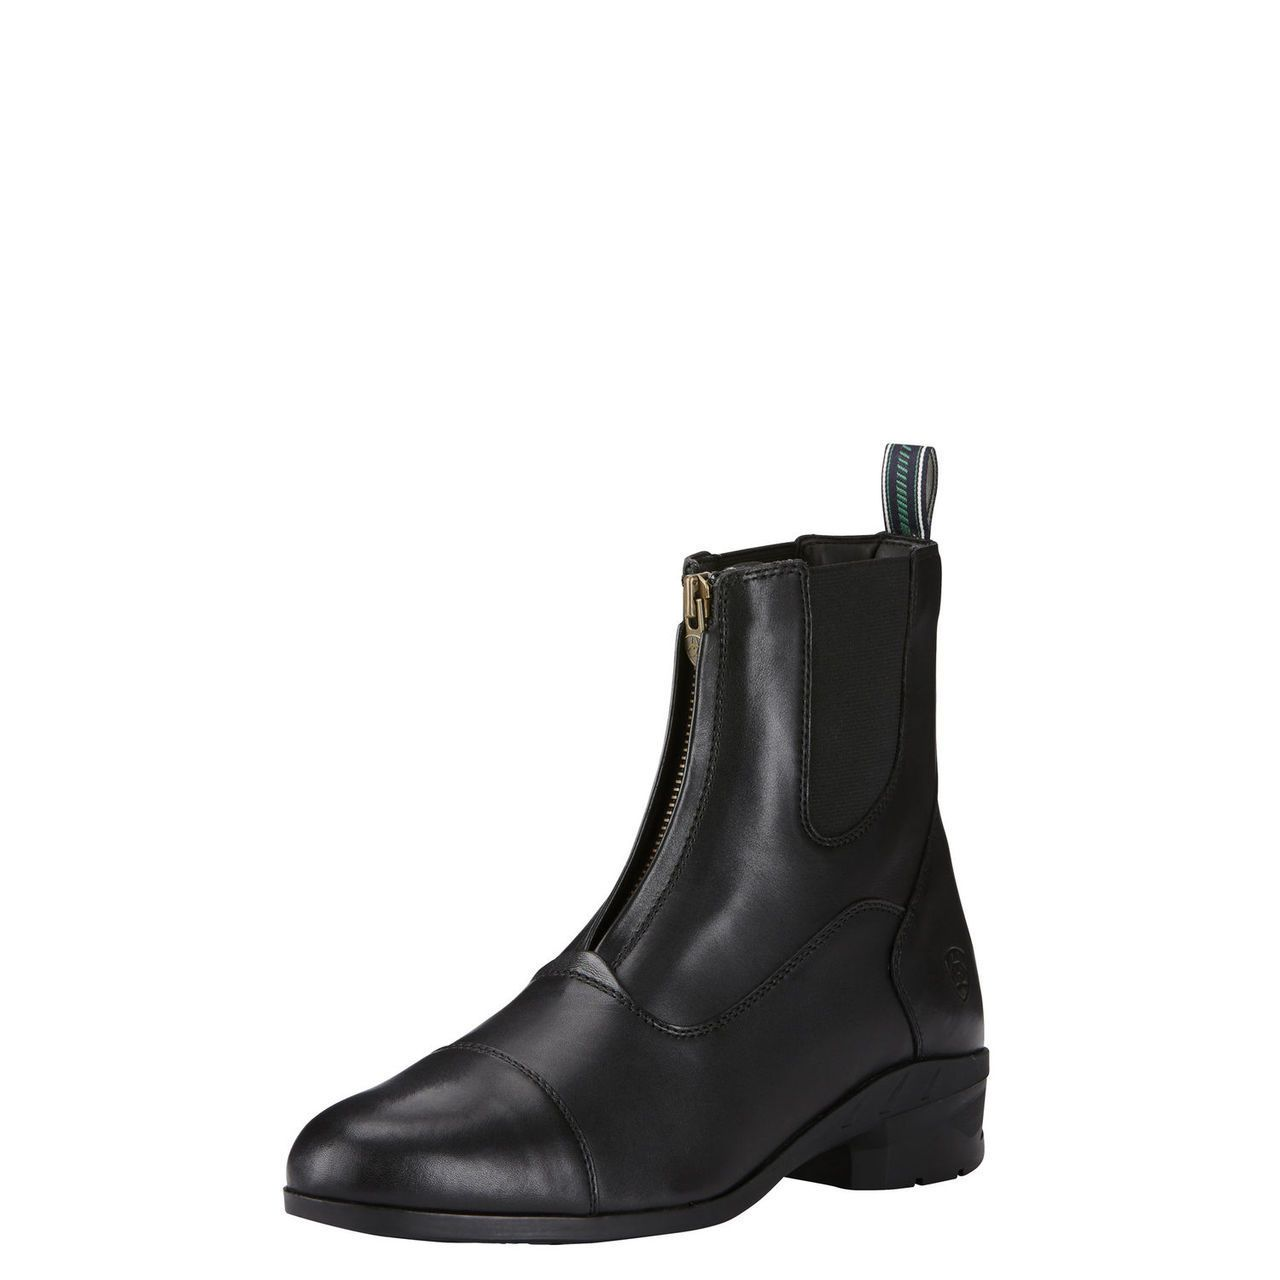 0a9a3019d2db Ariat Mens Heritage IV Zip Paddock Boots- Riding Boots | paddock ...